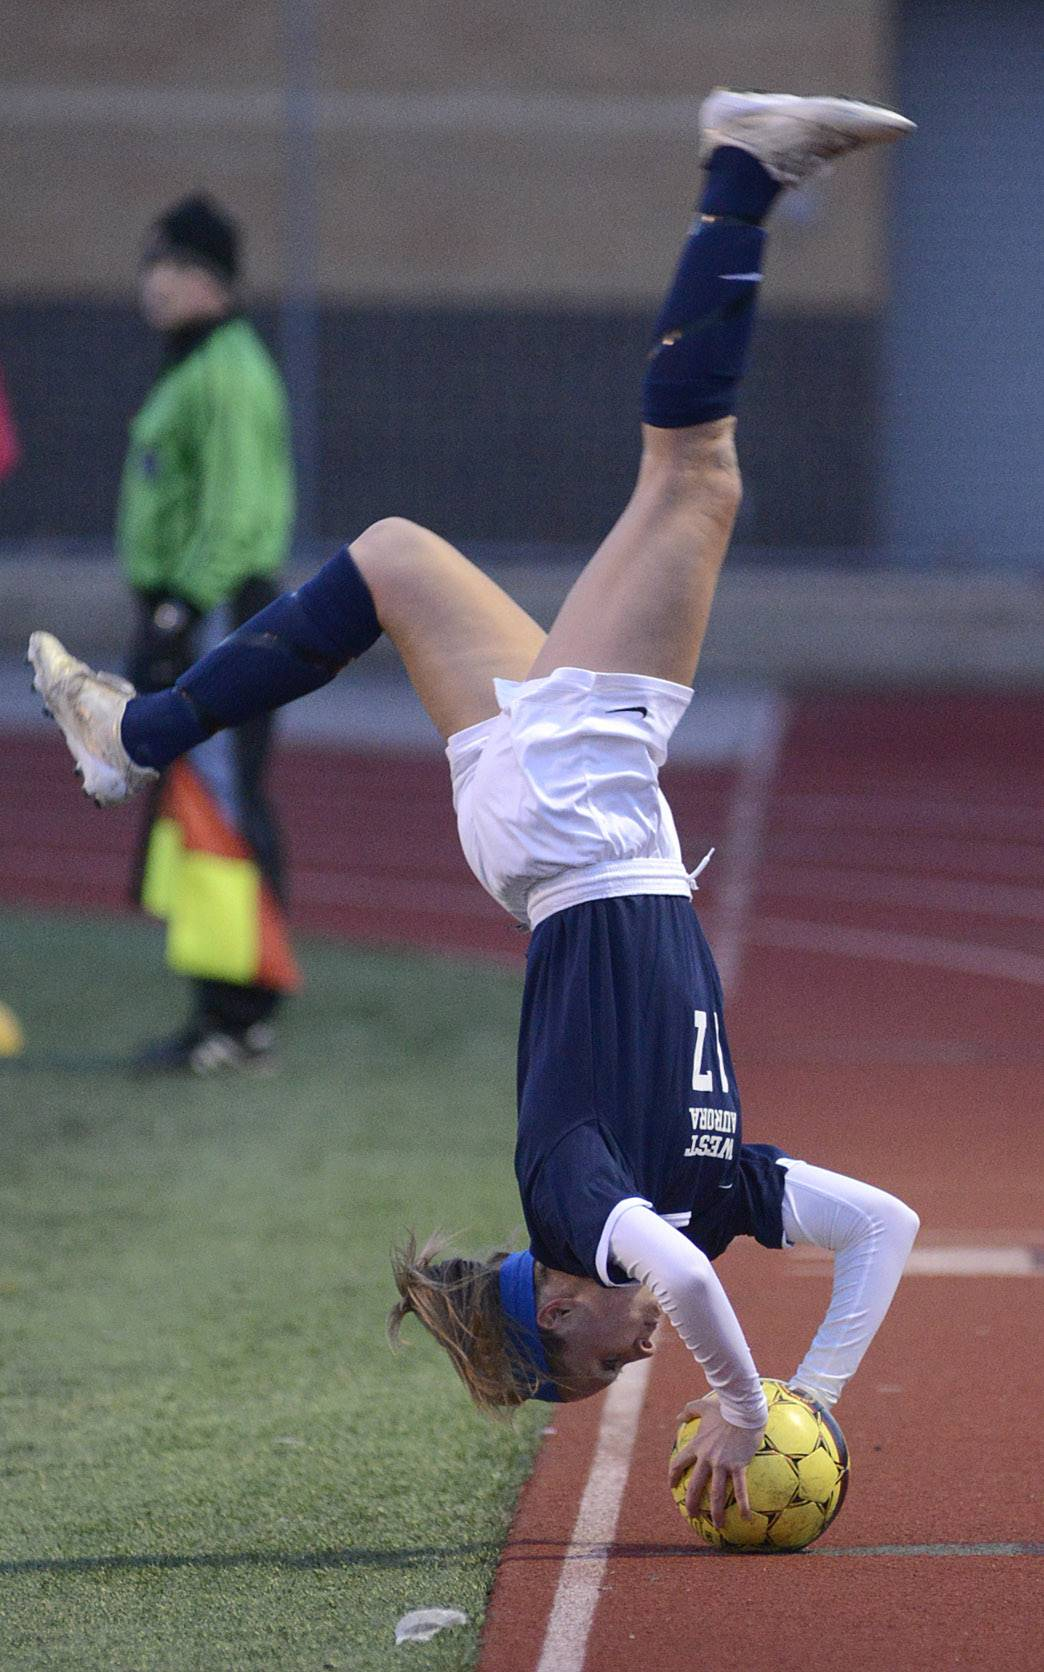 West Aurora's Sam O'Brien throws in the ball via somersault in the second half on Wednesday, April 16.